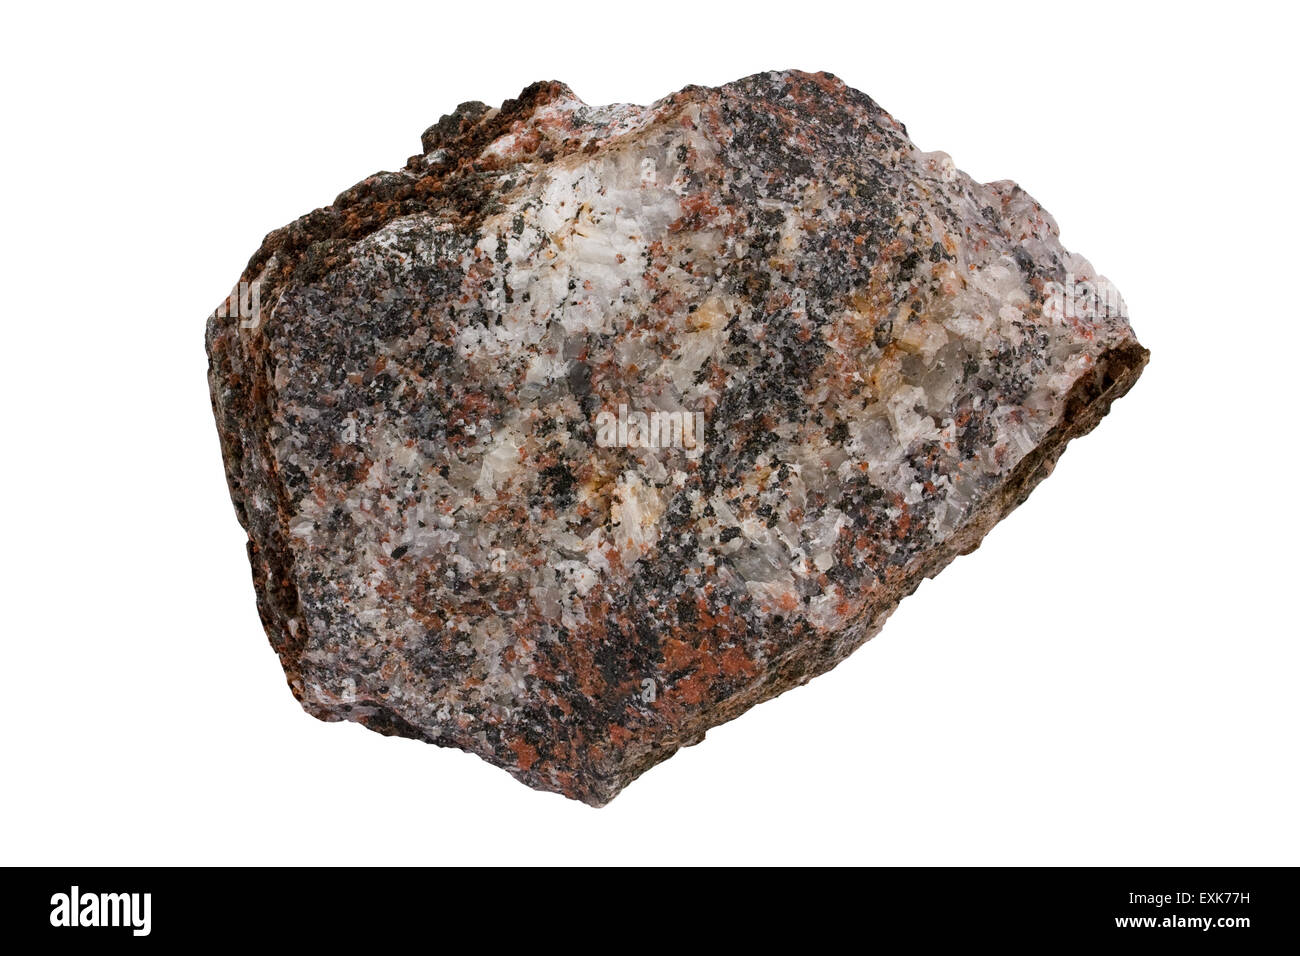 Fenite with carbonatite - Stock Image